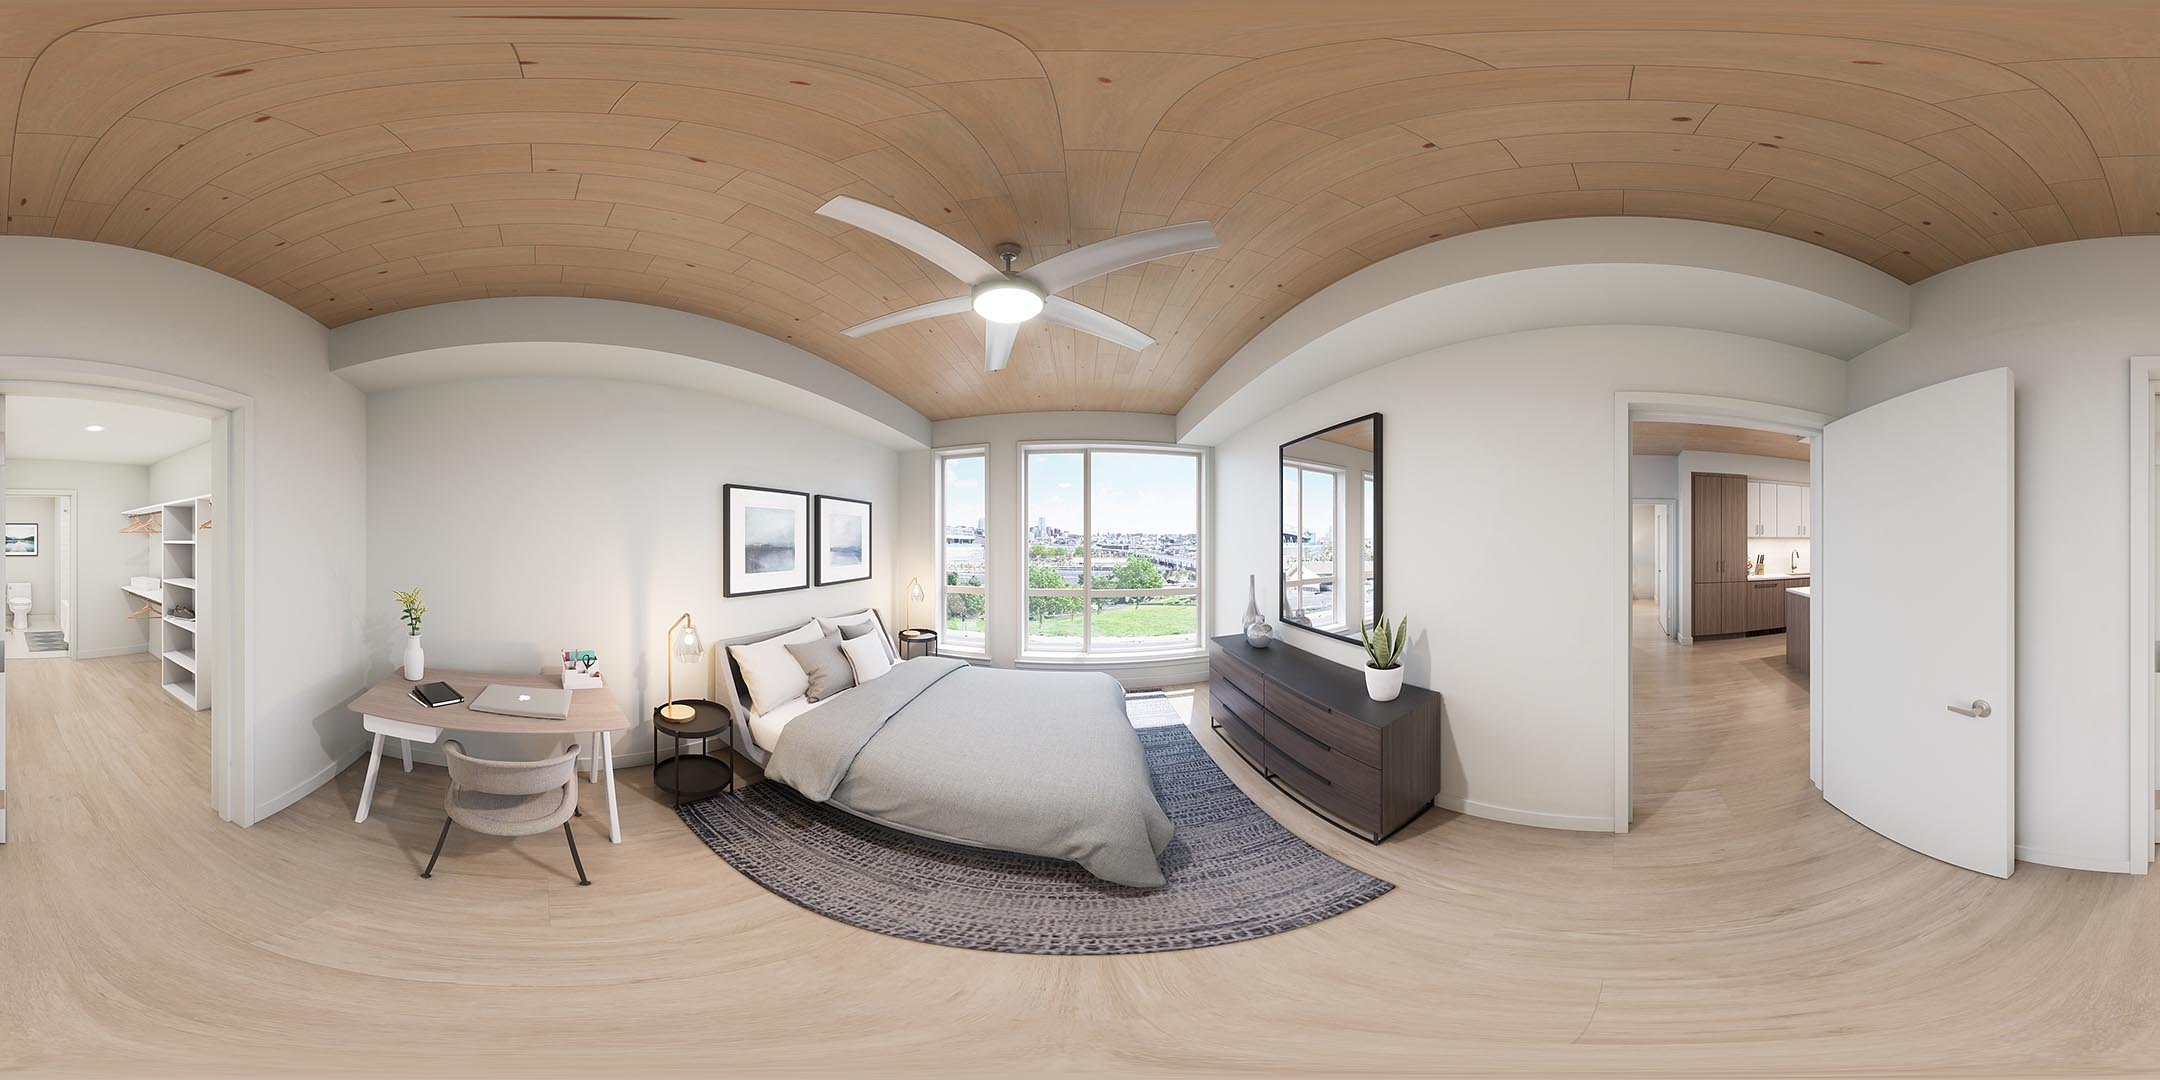 A 360 rendering of an apartment bedroom